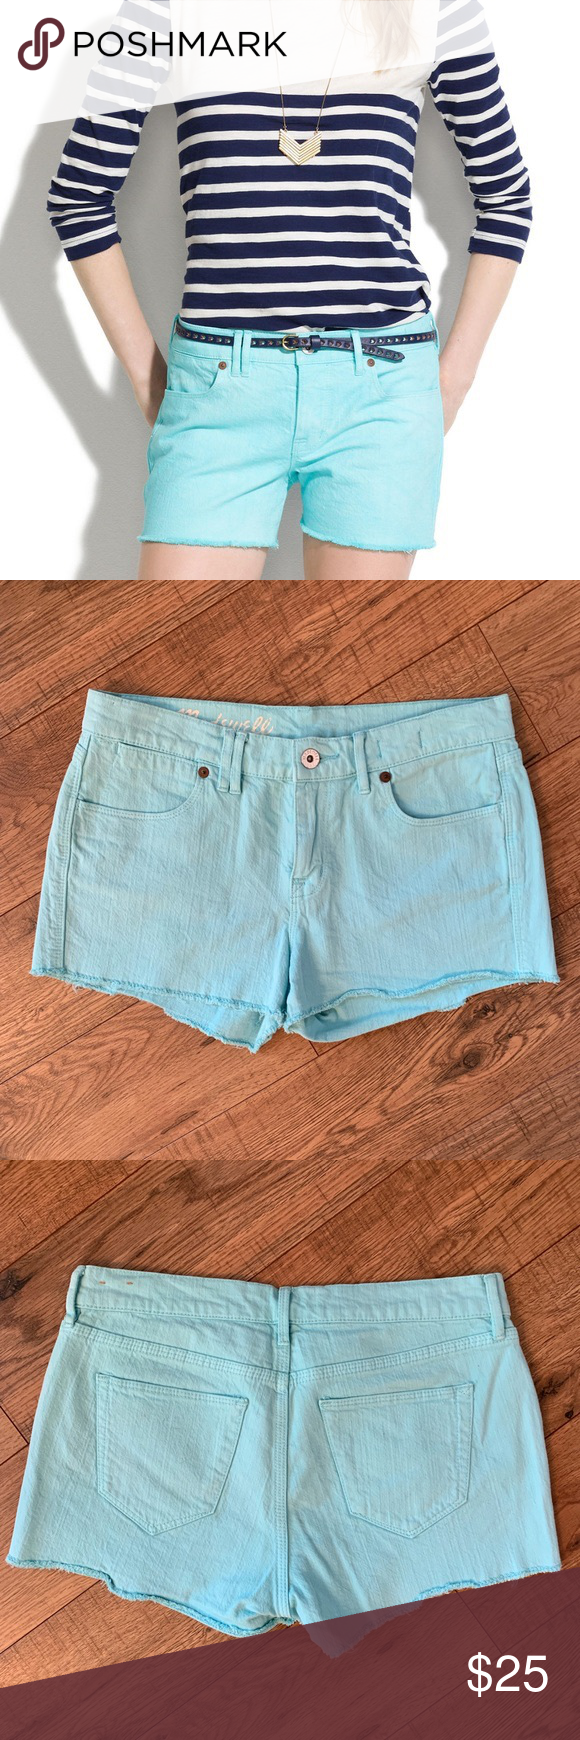 """Madewell Cutoff Shorts Bright/light blue denim cutoff shorts. Size 26 with a 2"""" inseam, 8.5"""" rise, 14.5"""" waist across. Excellent condition, no flaws. Madewell Shorts Jean Shorts #denimcutoffshorts Madewell Cutoff Shorts Bright/light blue denim cutoff shorts. Size 26 with a 2"""" inseam, 8.5"""" rise, 14.5"""" waist across. Excellent condition, no flaws. Madewell Shorts Jean Shorts #denimcutoffshorts"""